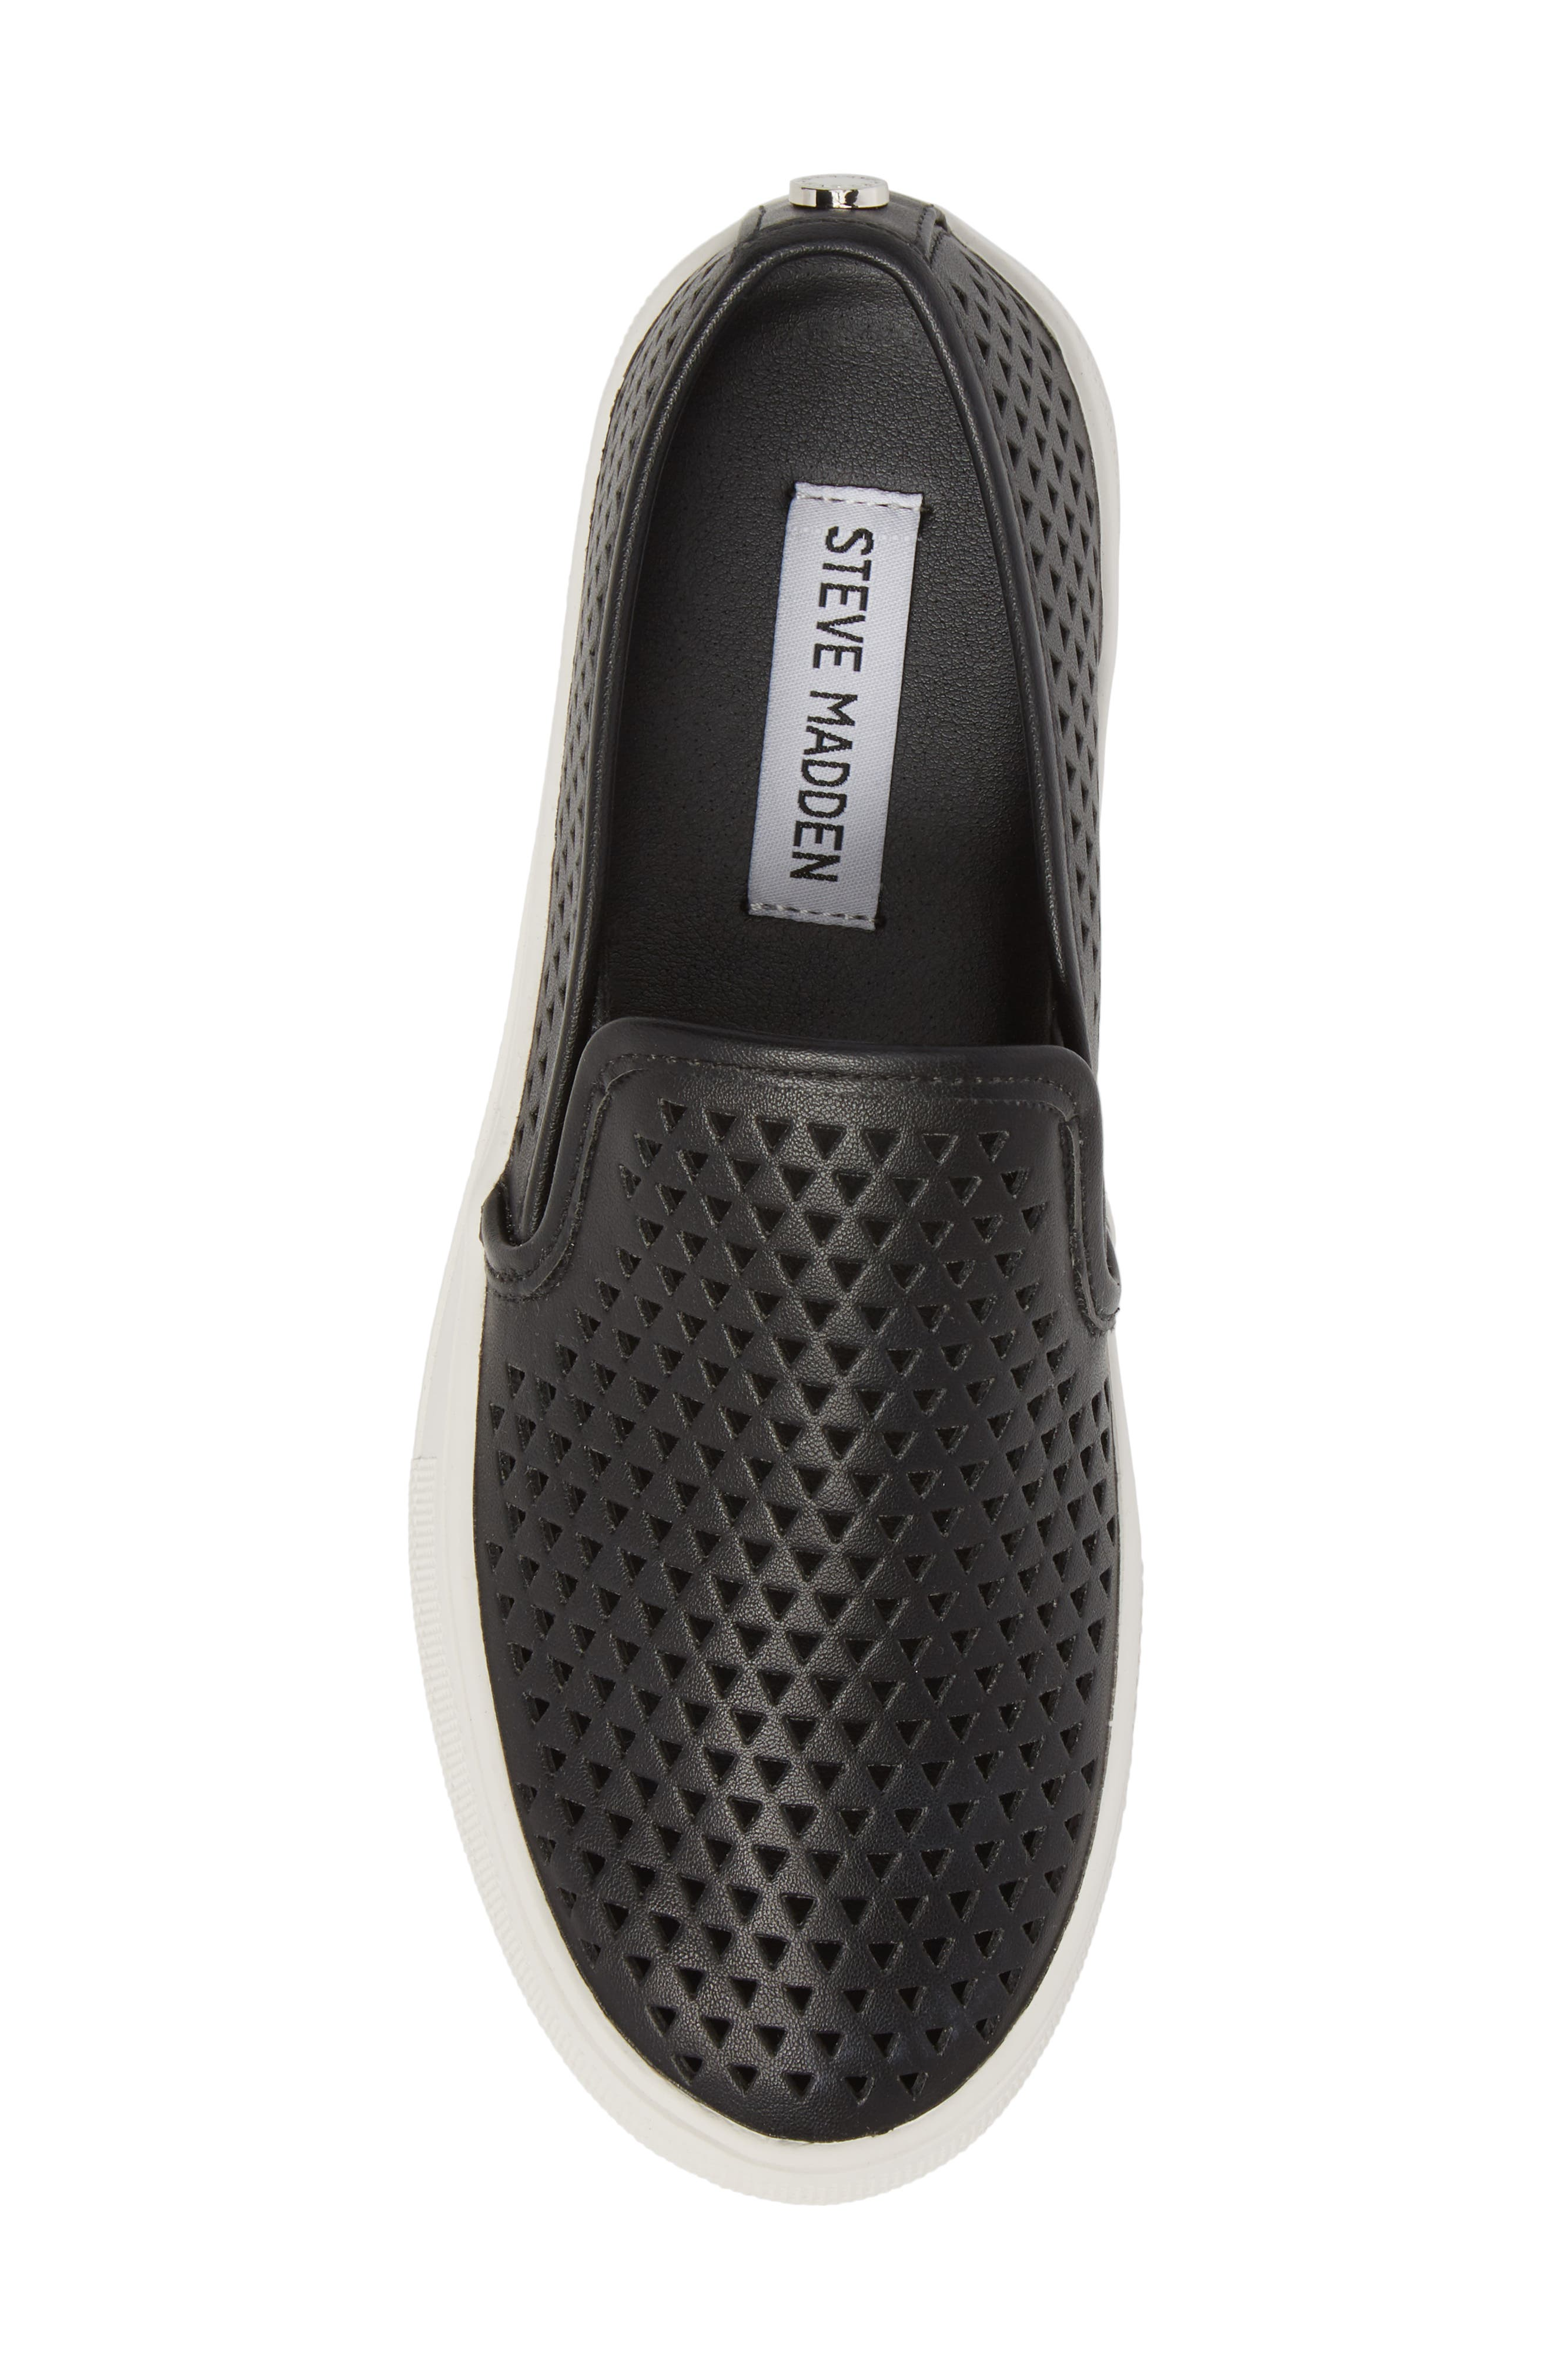 Gal-P Perforated Slip-On Sneaker,                             Alternate thumbnail 5, color,                             Black